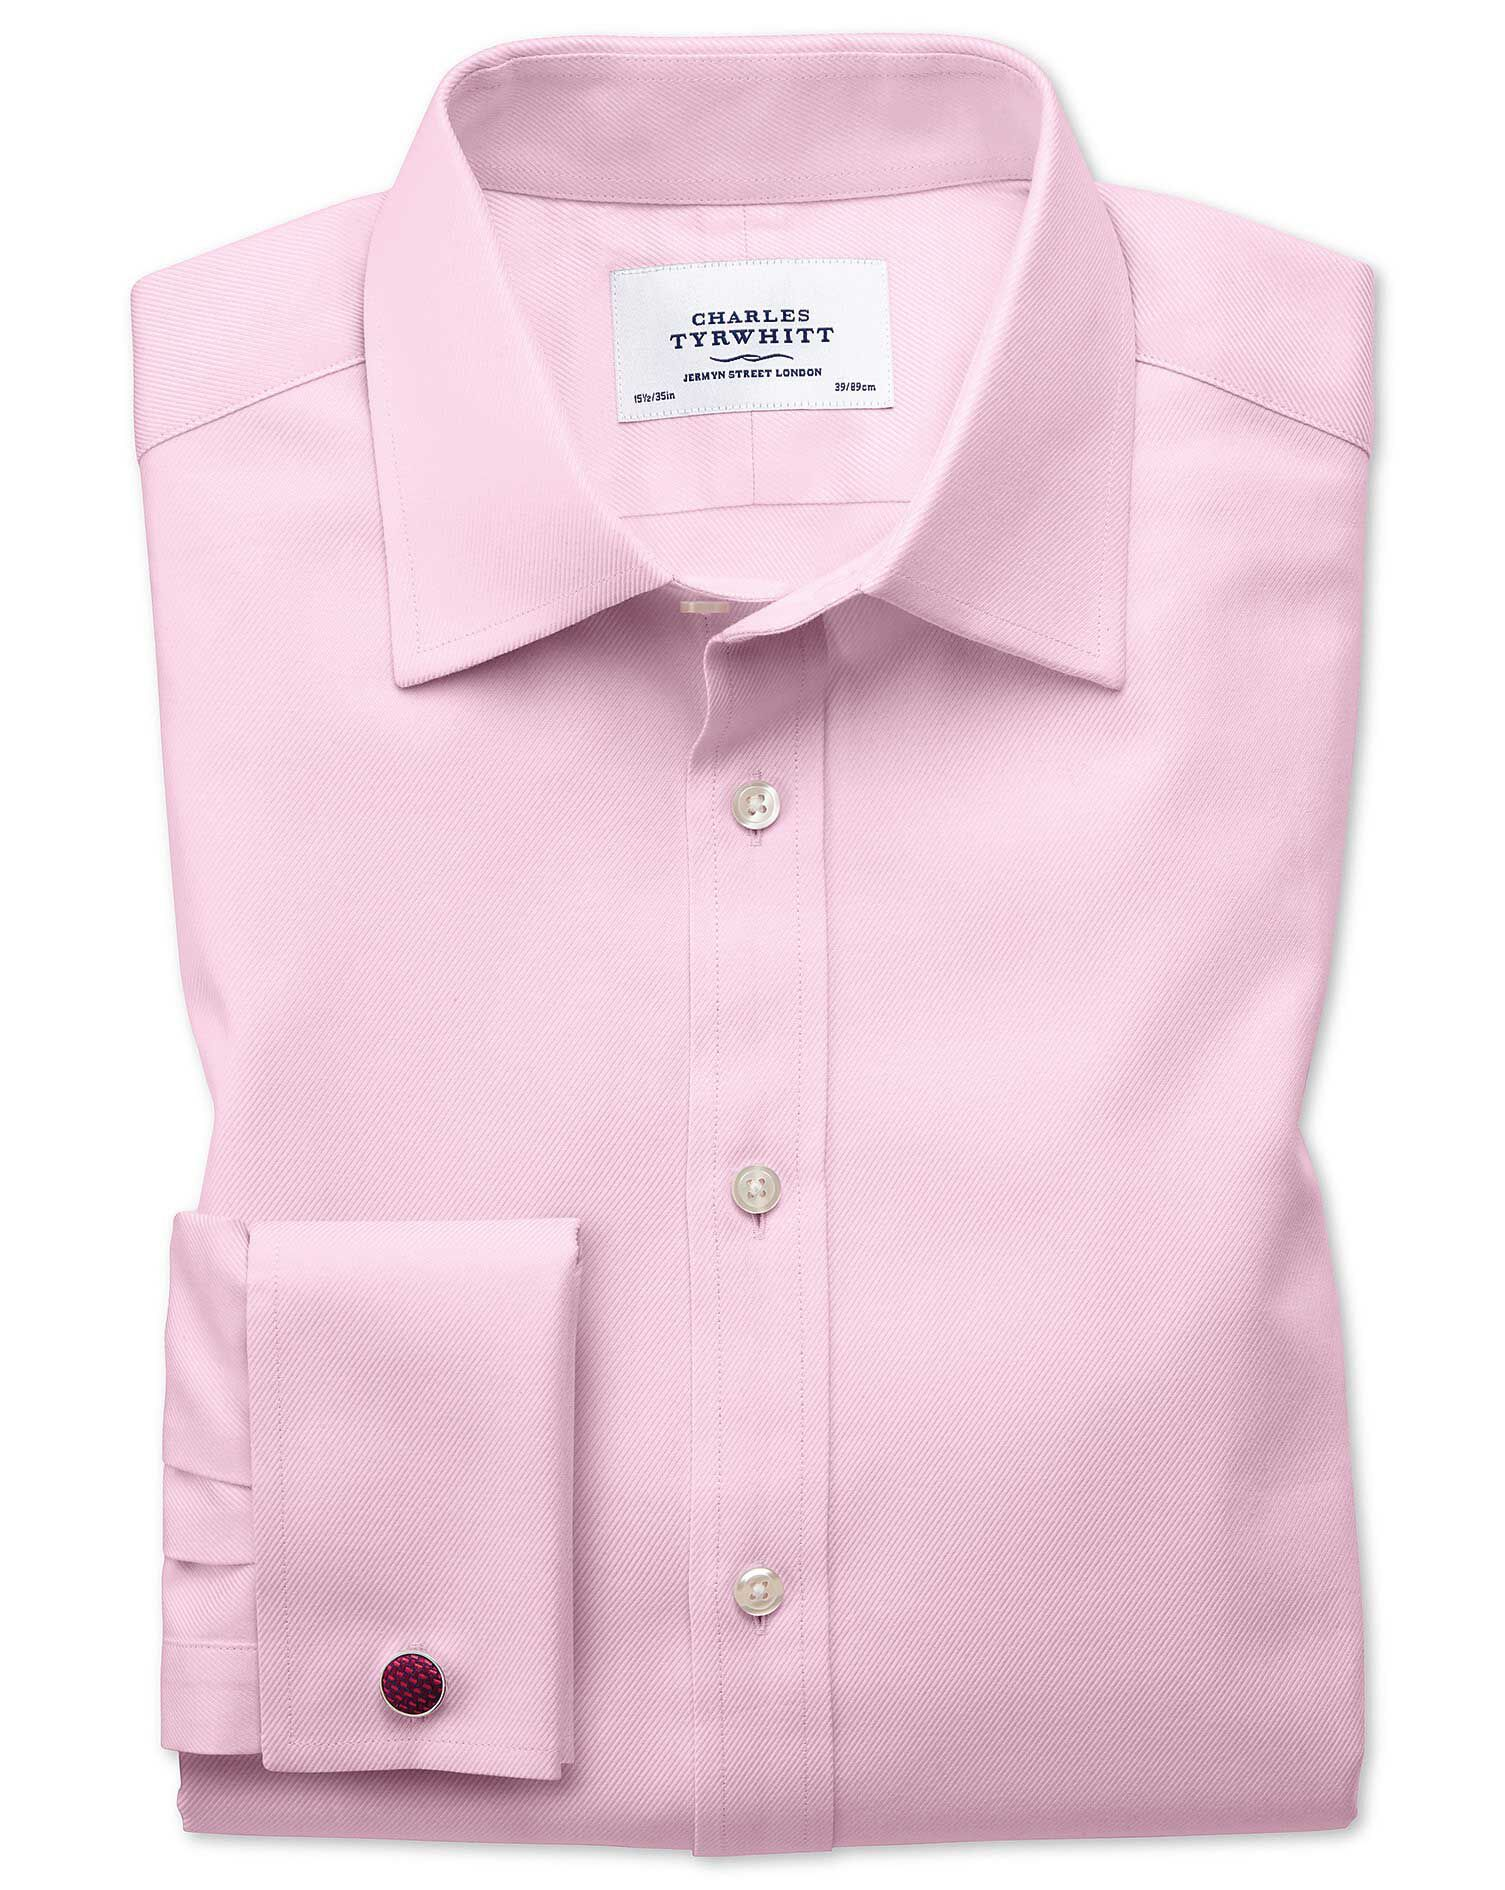 Slim Fit Egyptian Cotton Cavalry Twill Light Pink Formal Shirt Double Cuff Size 16.5/34 by Charles T